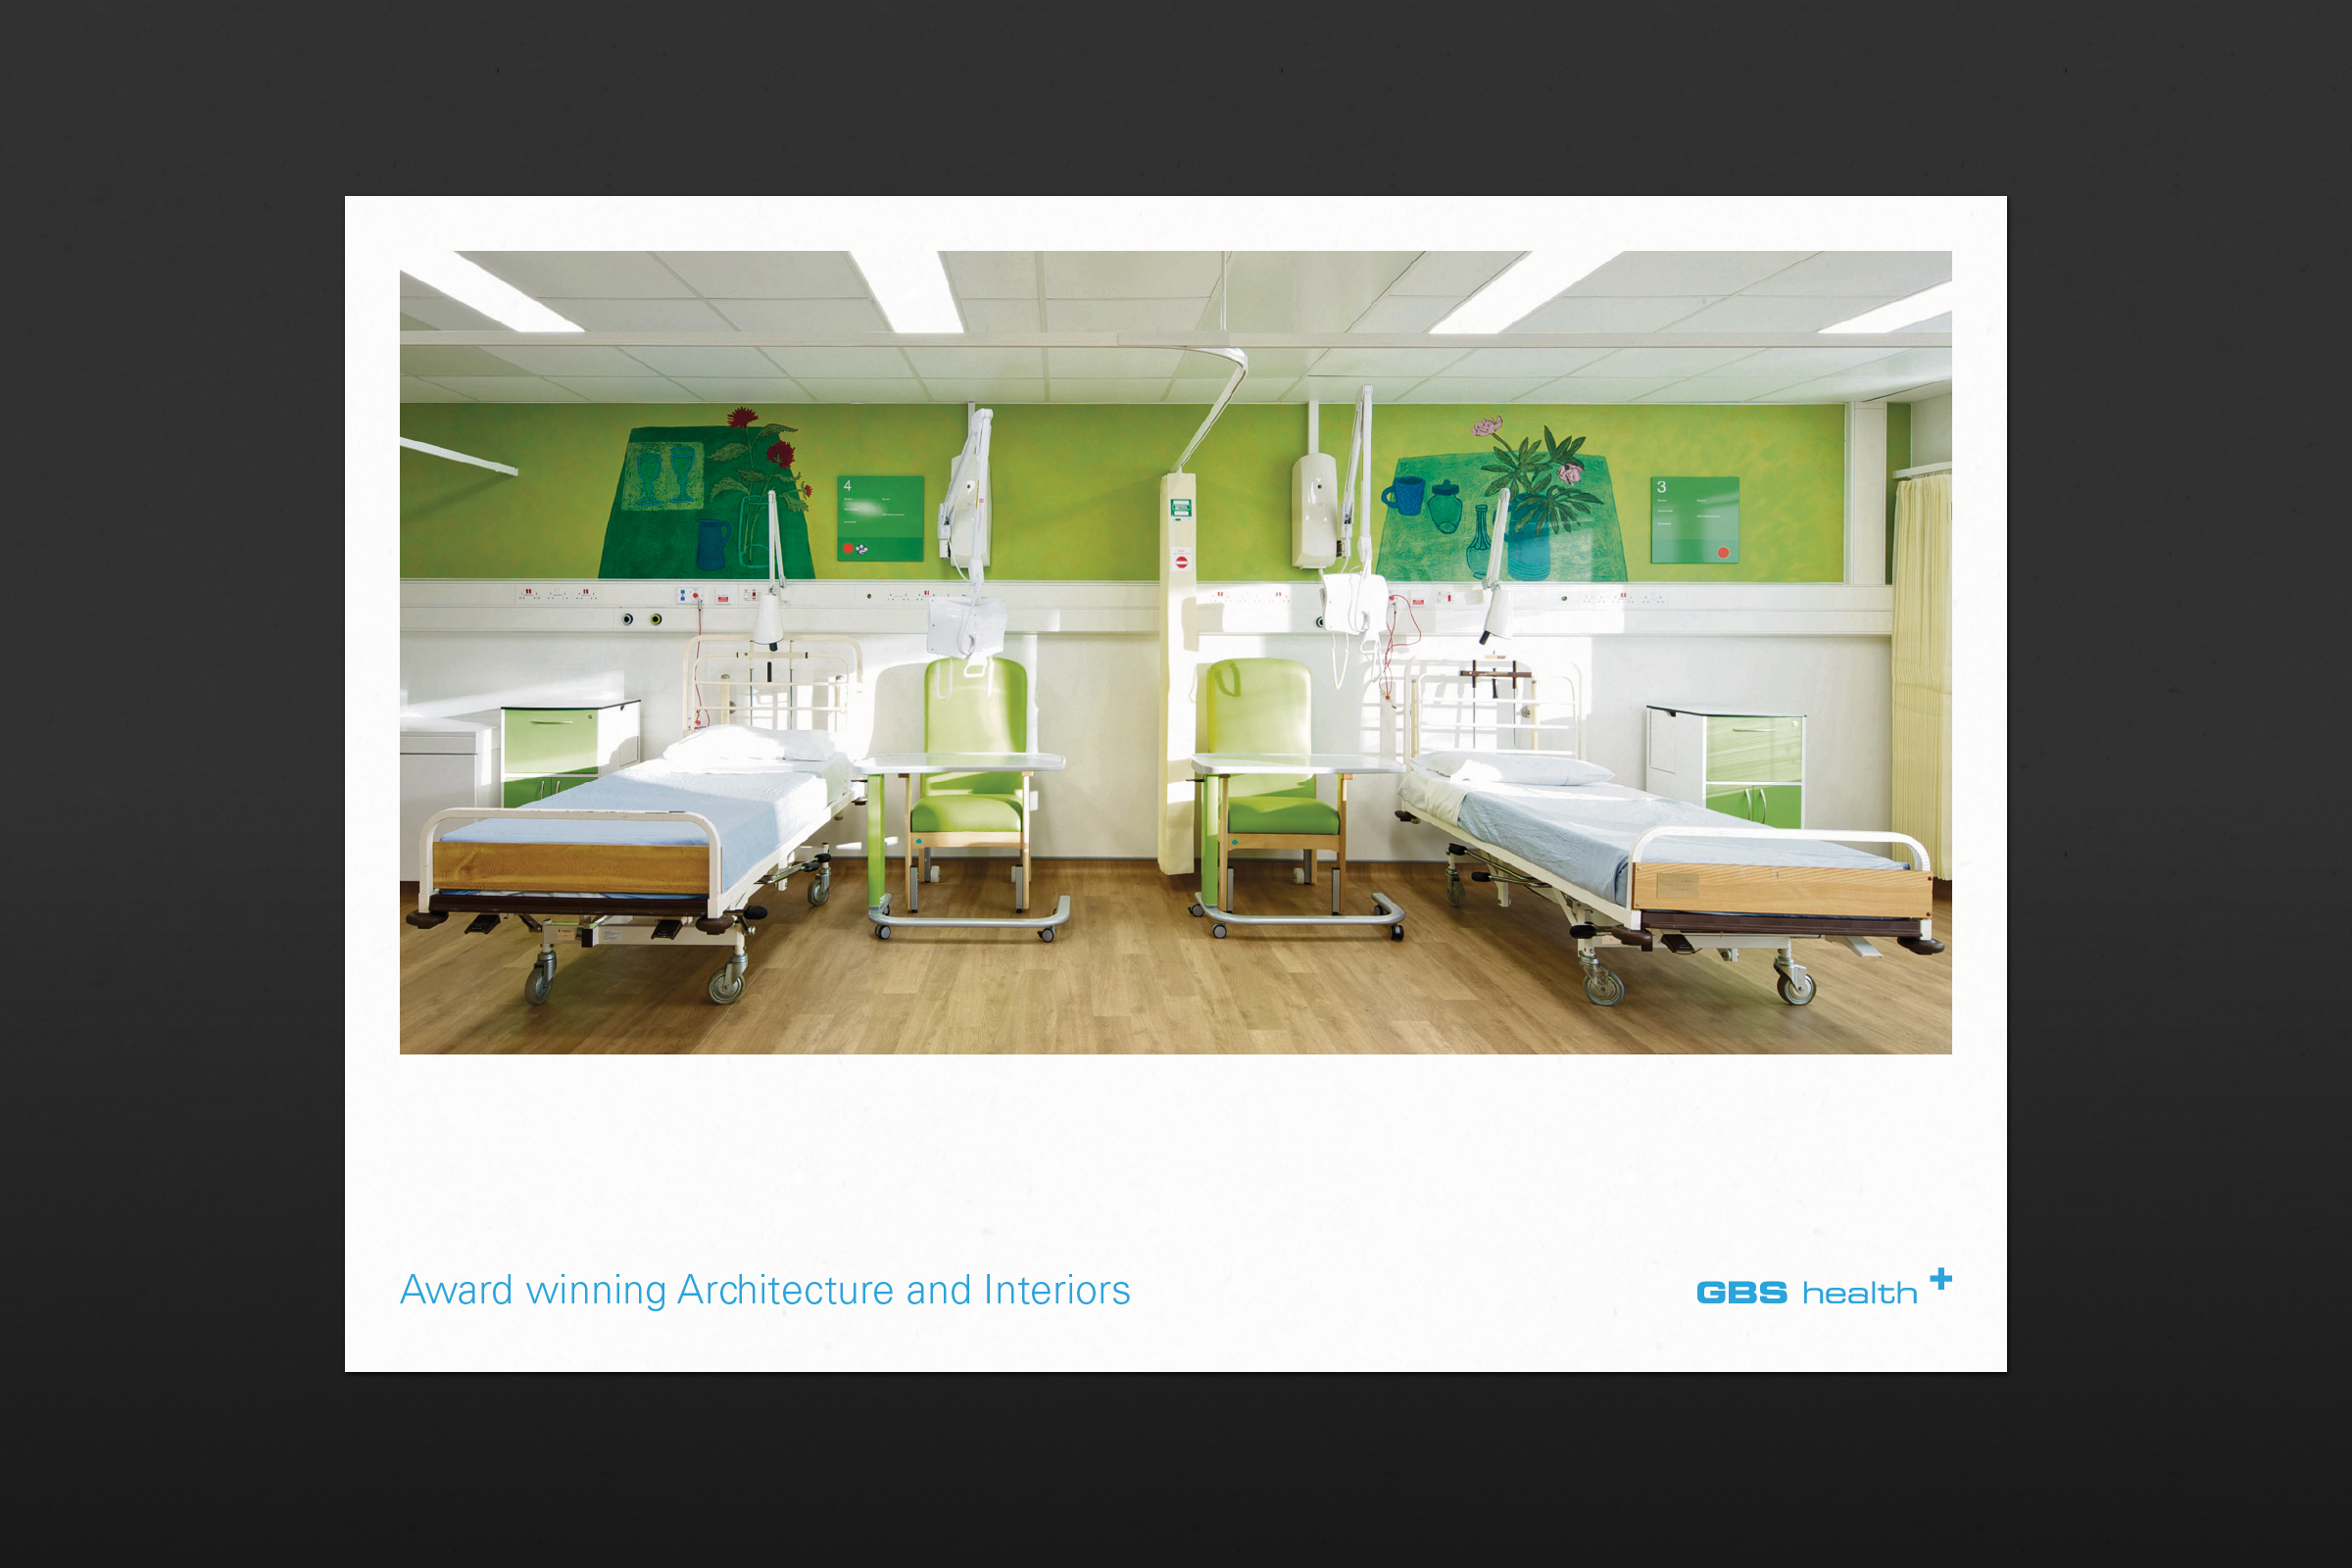 Brochure design showing image of hospital ward for GBS Architects